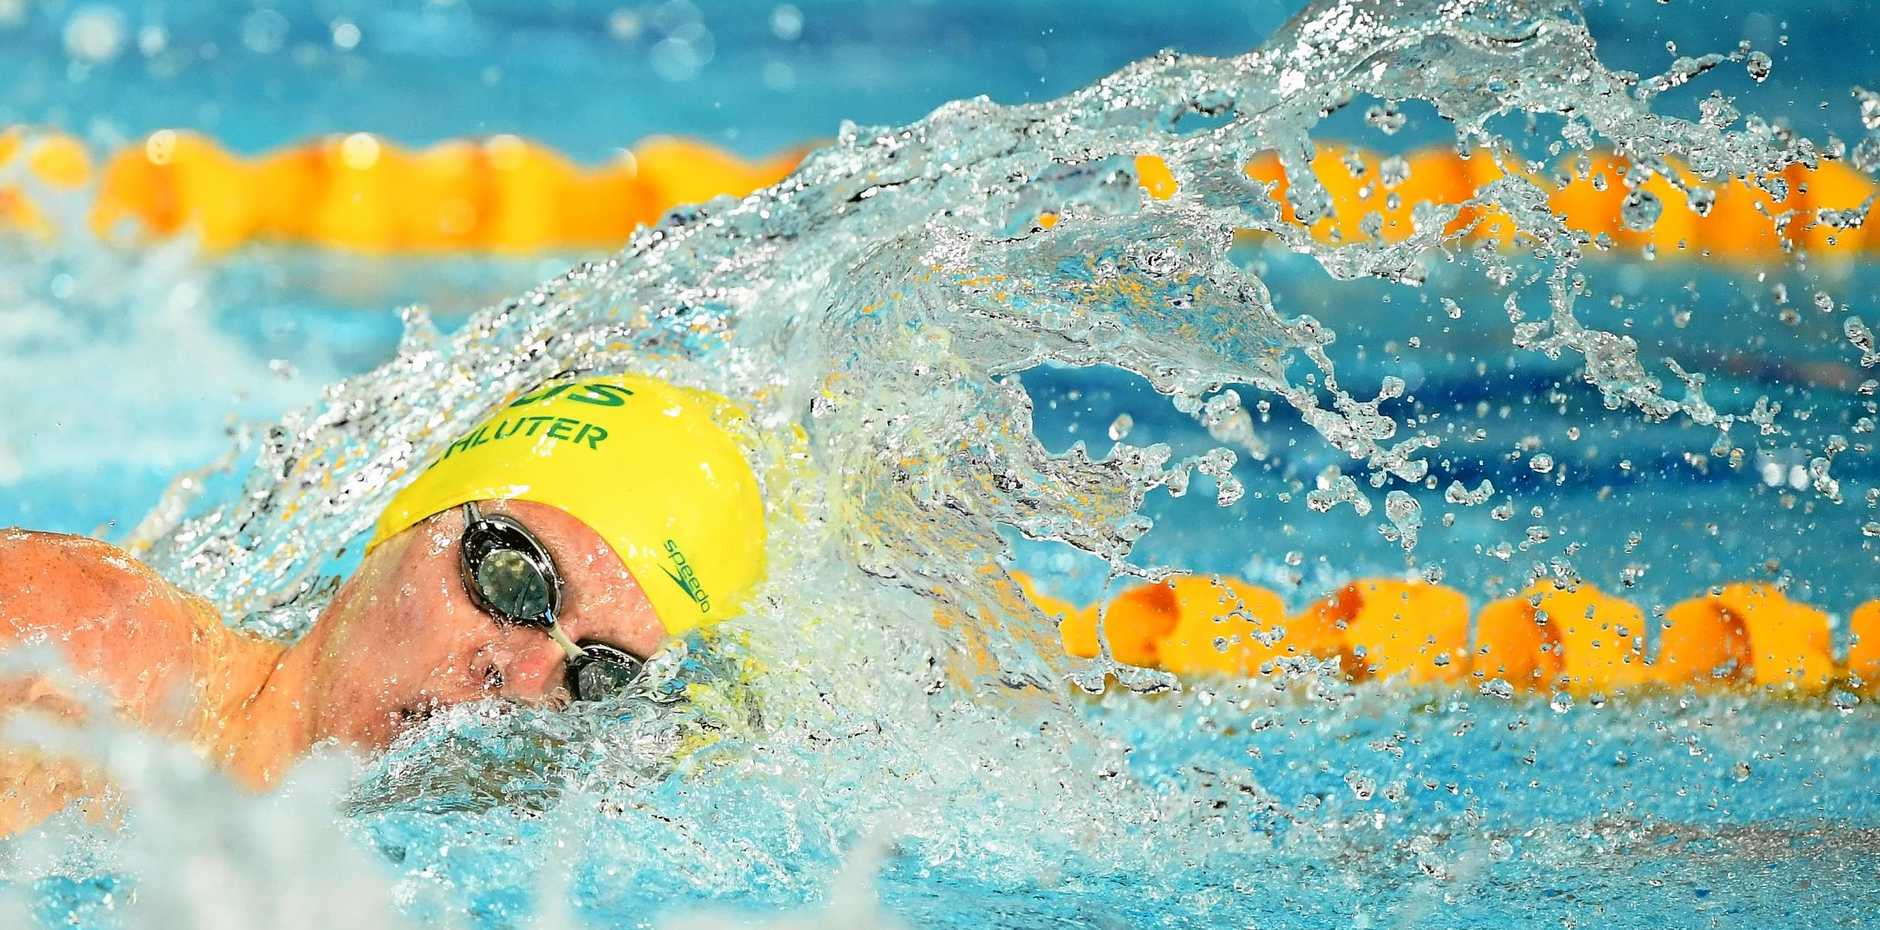 SILVER MEDALLIST: Liam Schluter during the men's S14 200m freestyle final at the Gold Coast.